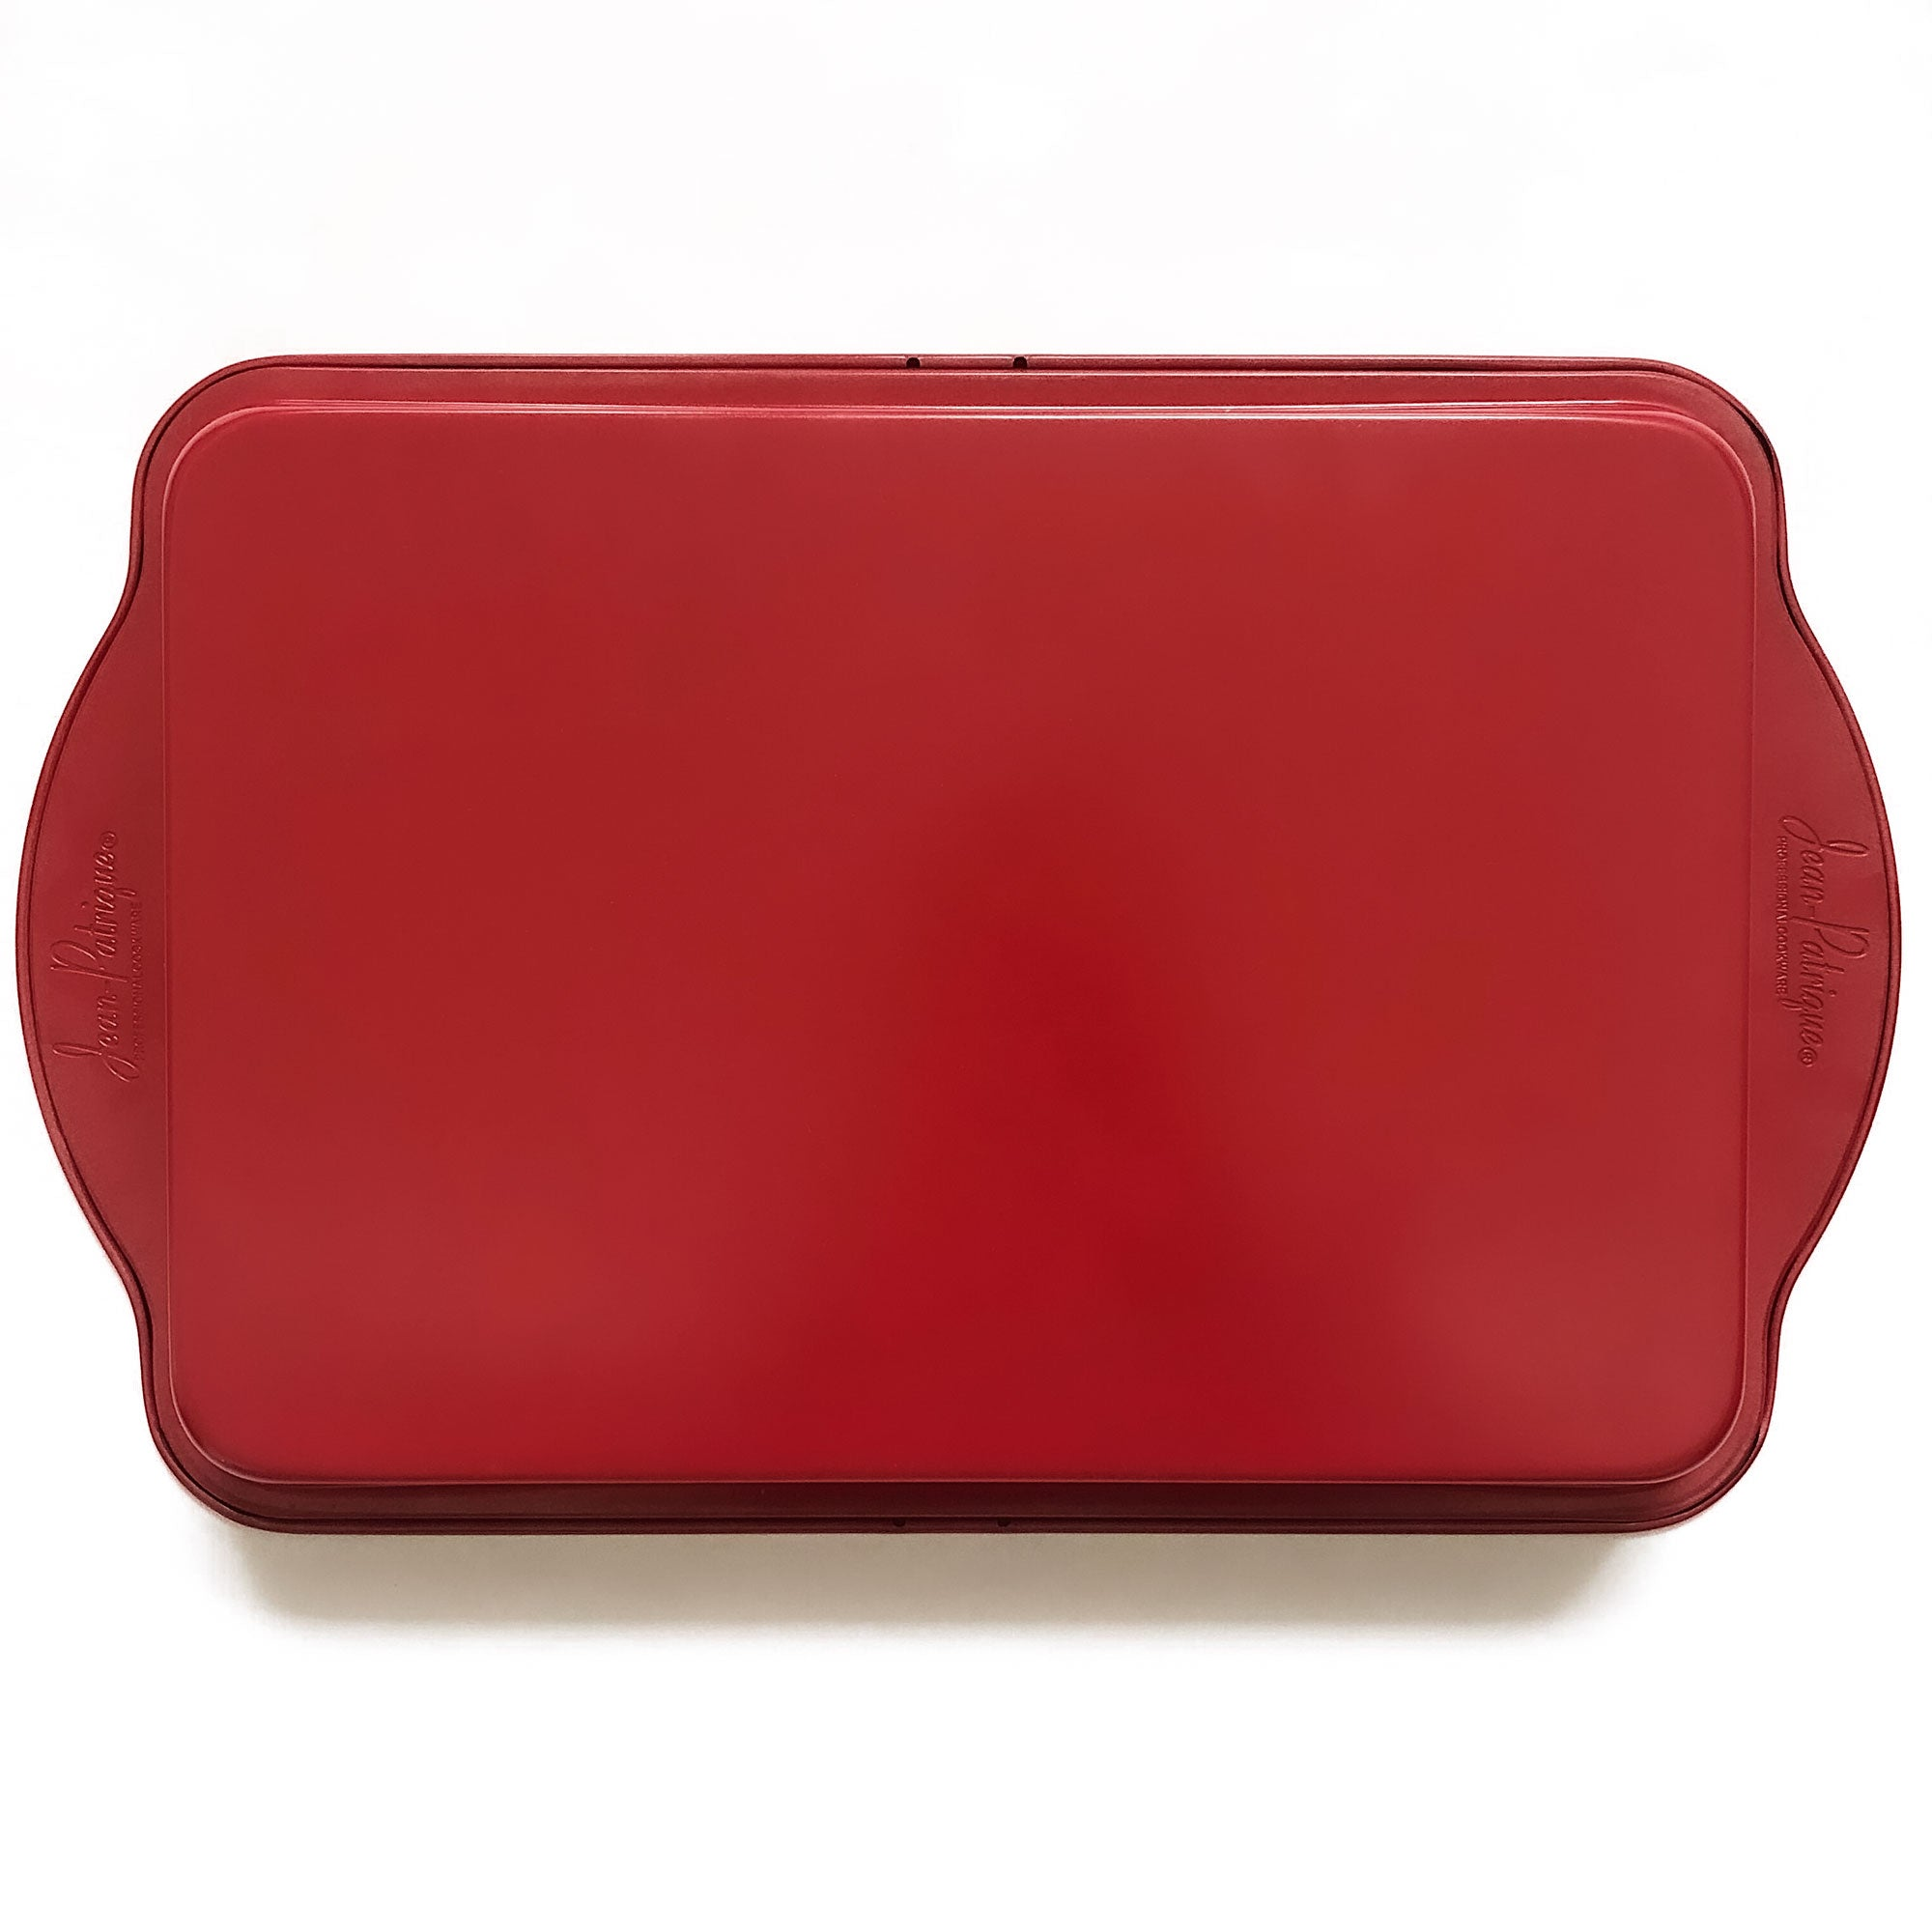 Eco-Cook Non-Stick Ceramic Oven Dish - 30cm